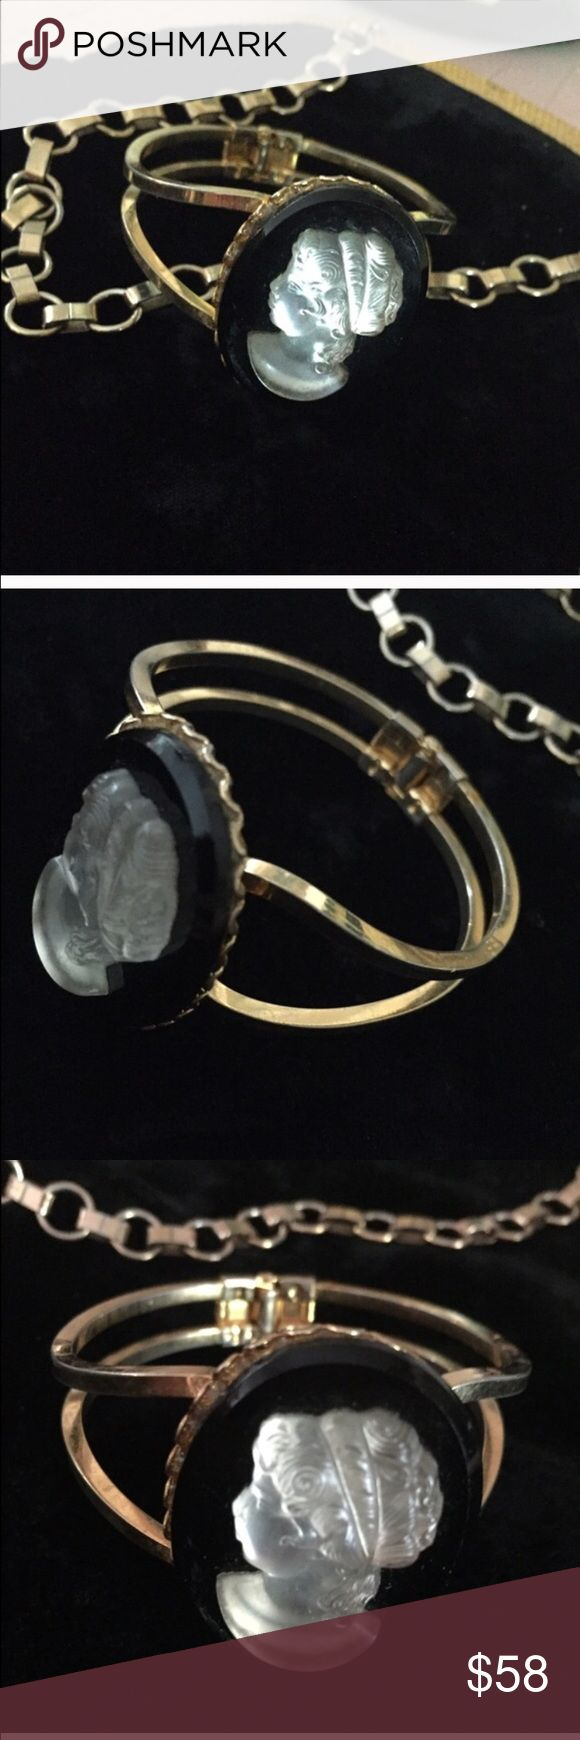 """VTG Black & Frosted Glass Cameo Bracelet Beautiful Vintage retro Clamper Cuff BRACELET with a Frosted Glass Cameo on top of a black resin disc on a gold-tone clamper bracelet. SPRING LOADED HINGE. Hidden front opening SPREADS APART to place on your wrist. Inside diameter measures 6-1/2"""", so if you measure your wrist you can compare for fit. Cameo measures 1-3/4"""" x 1-1/4"""". No maker's mark. In excellent preowned vintage condition! Vintage Jewelry Bracelets"""